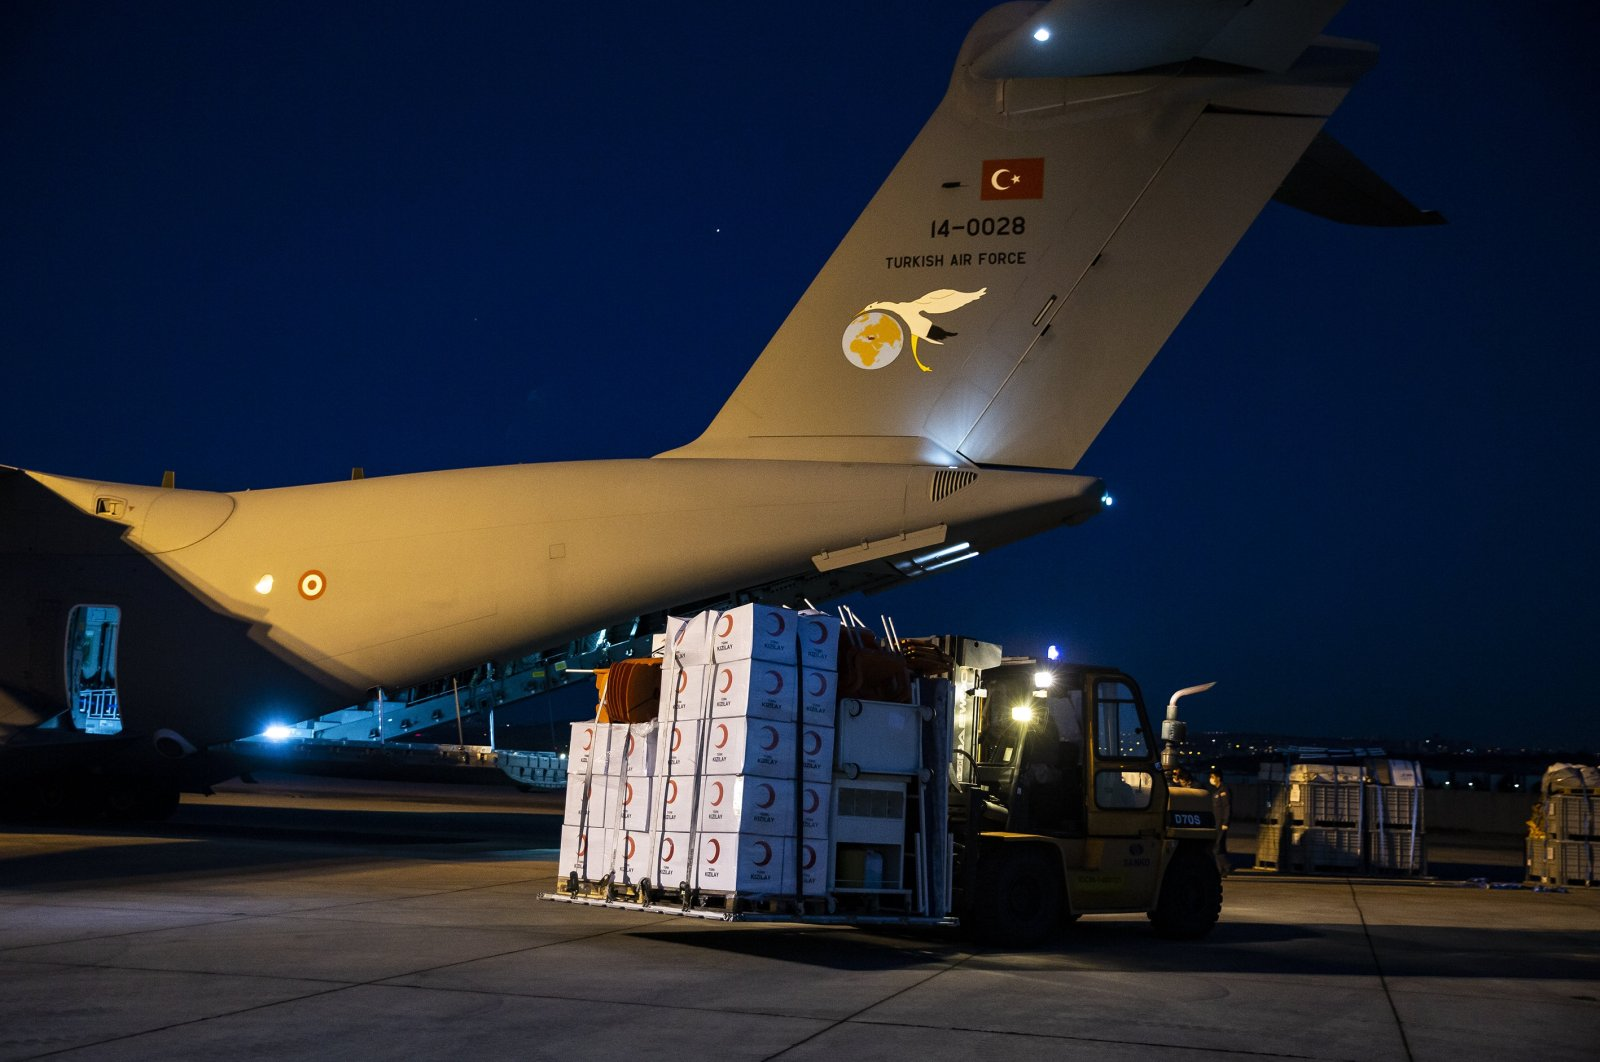 Boxes of medical aid supplies en route to Lebanon are seen at a military airbase in Ankara Turkey on Aug. 7, 2020. (AA Photo)